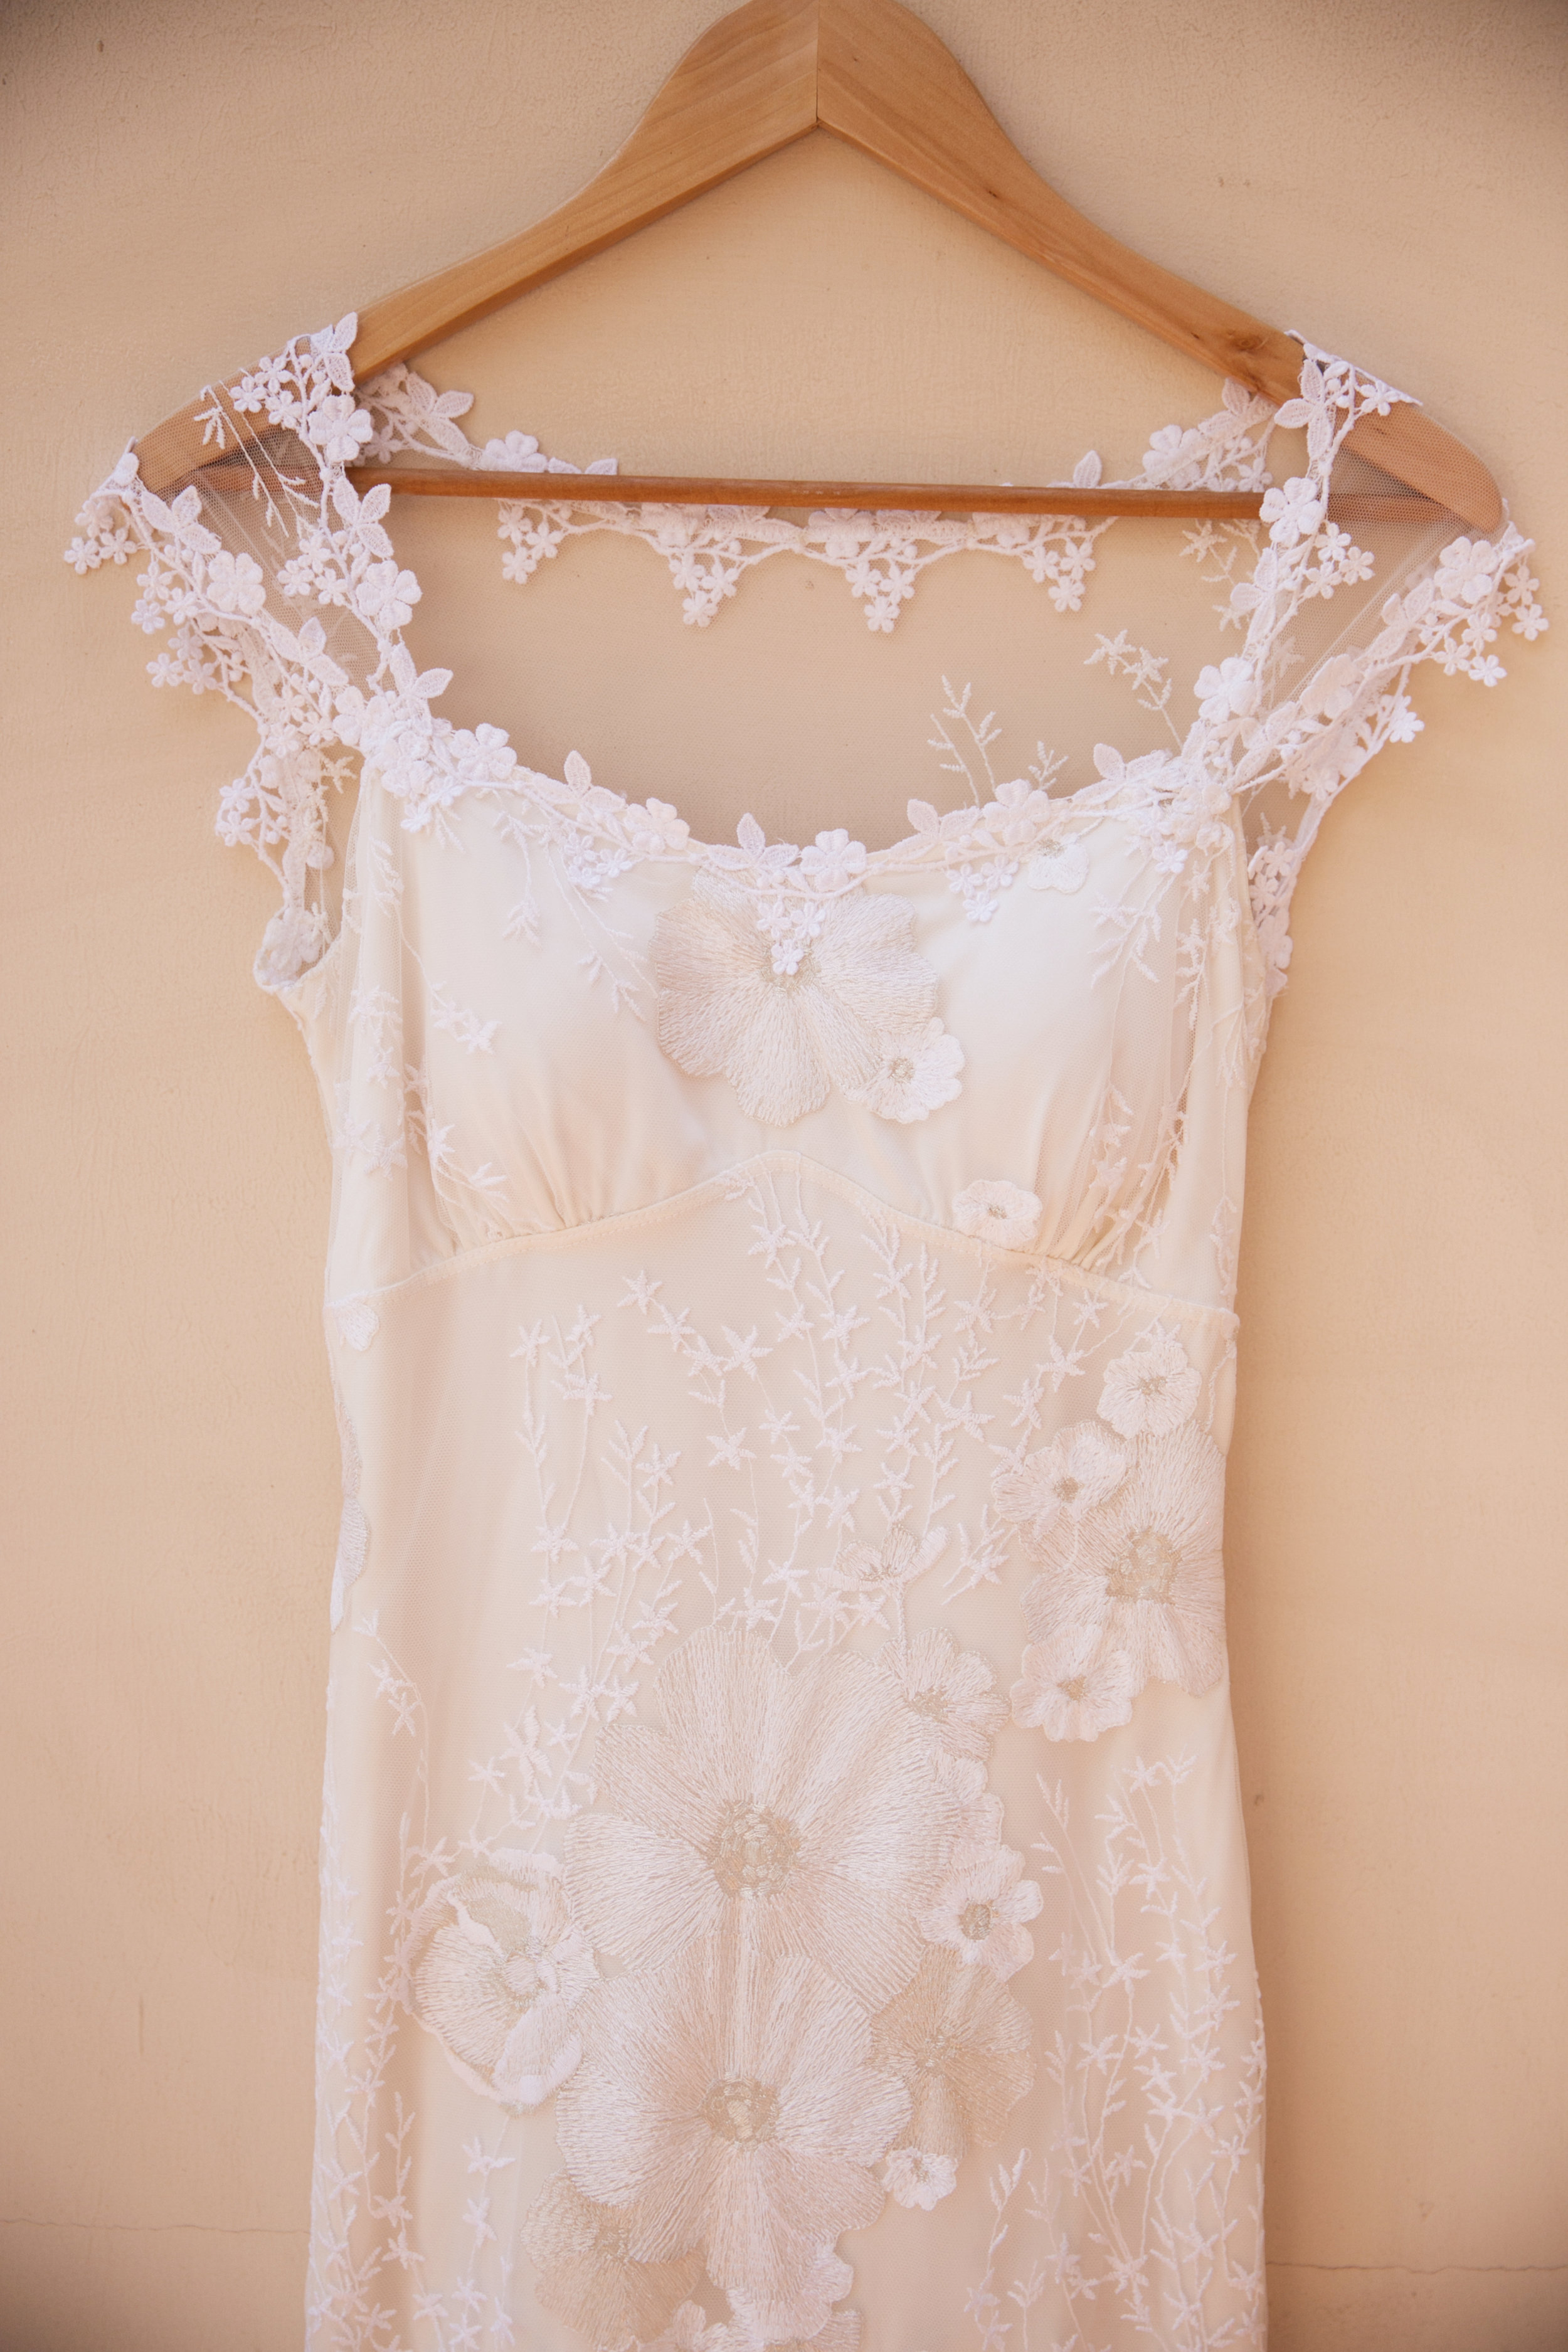 floral appliqué wedding dress